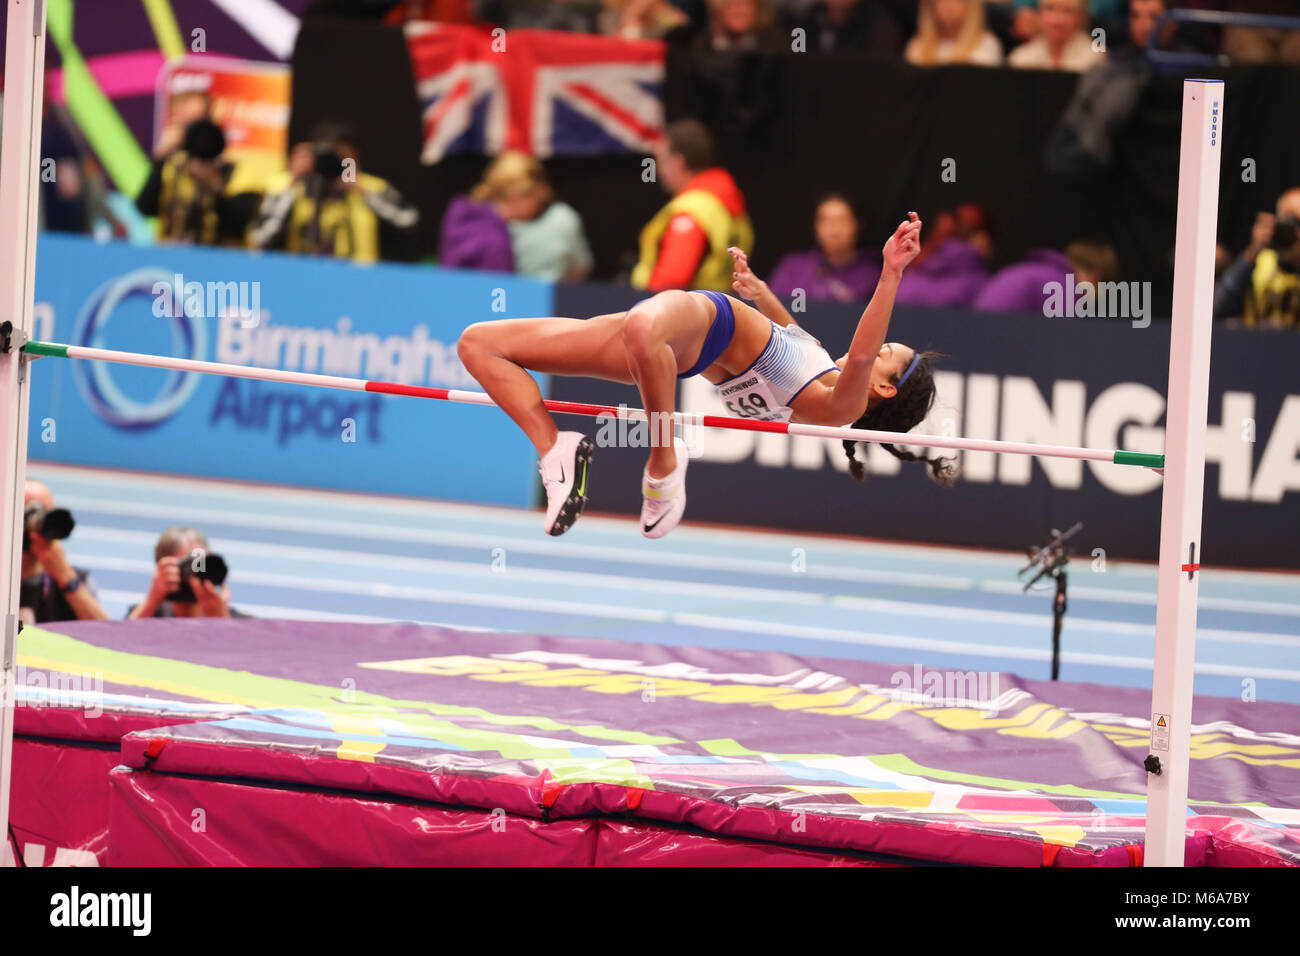 Birmingham, UK. 2nd Mar, 2018. Katarina JOHNSON-THOMPSON GREAT BRITAIN competes in the high jump during the IAAF - Stock Image